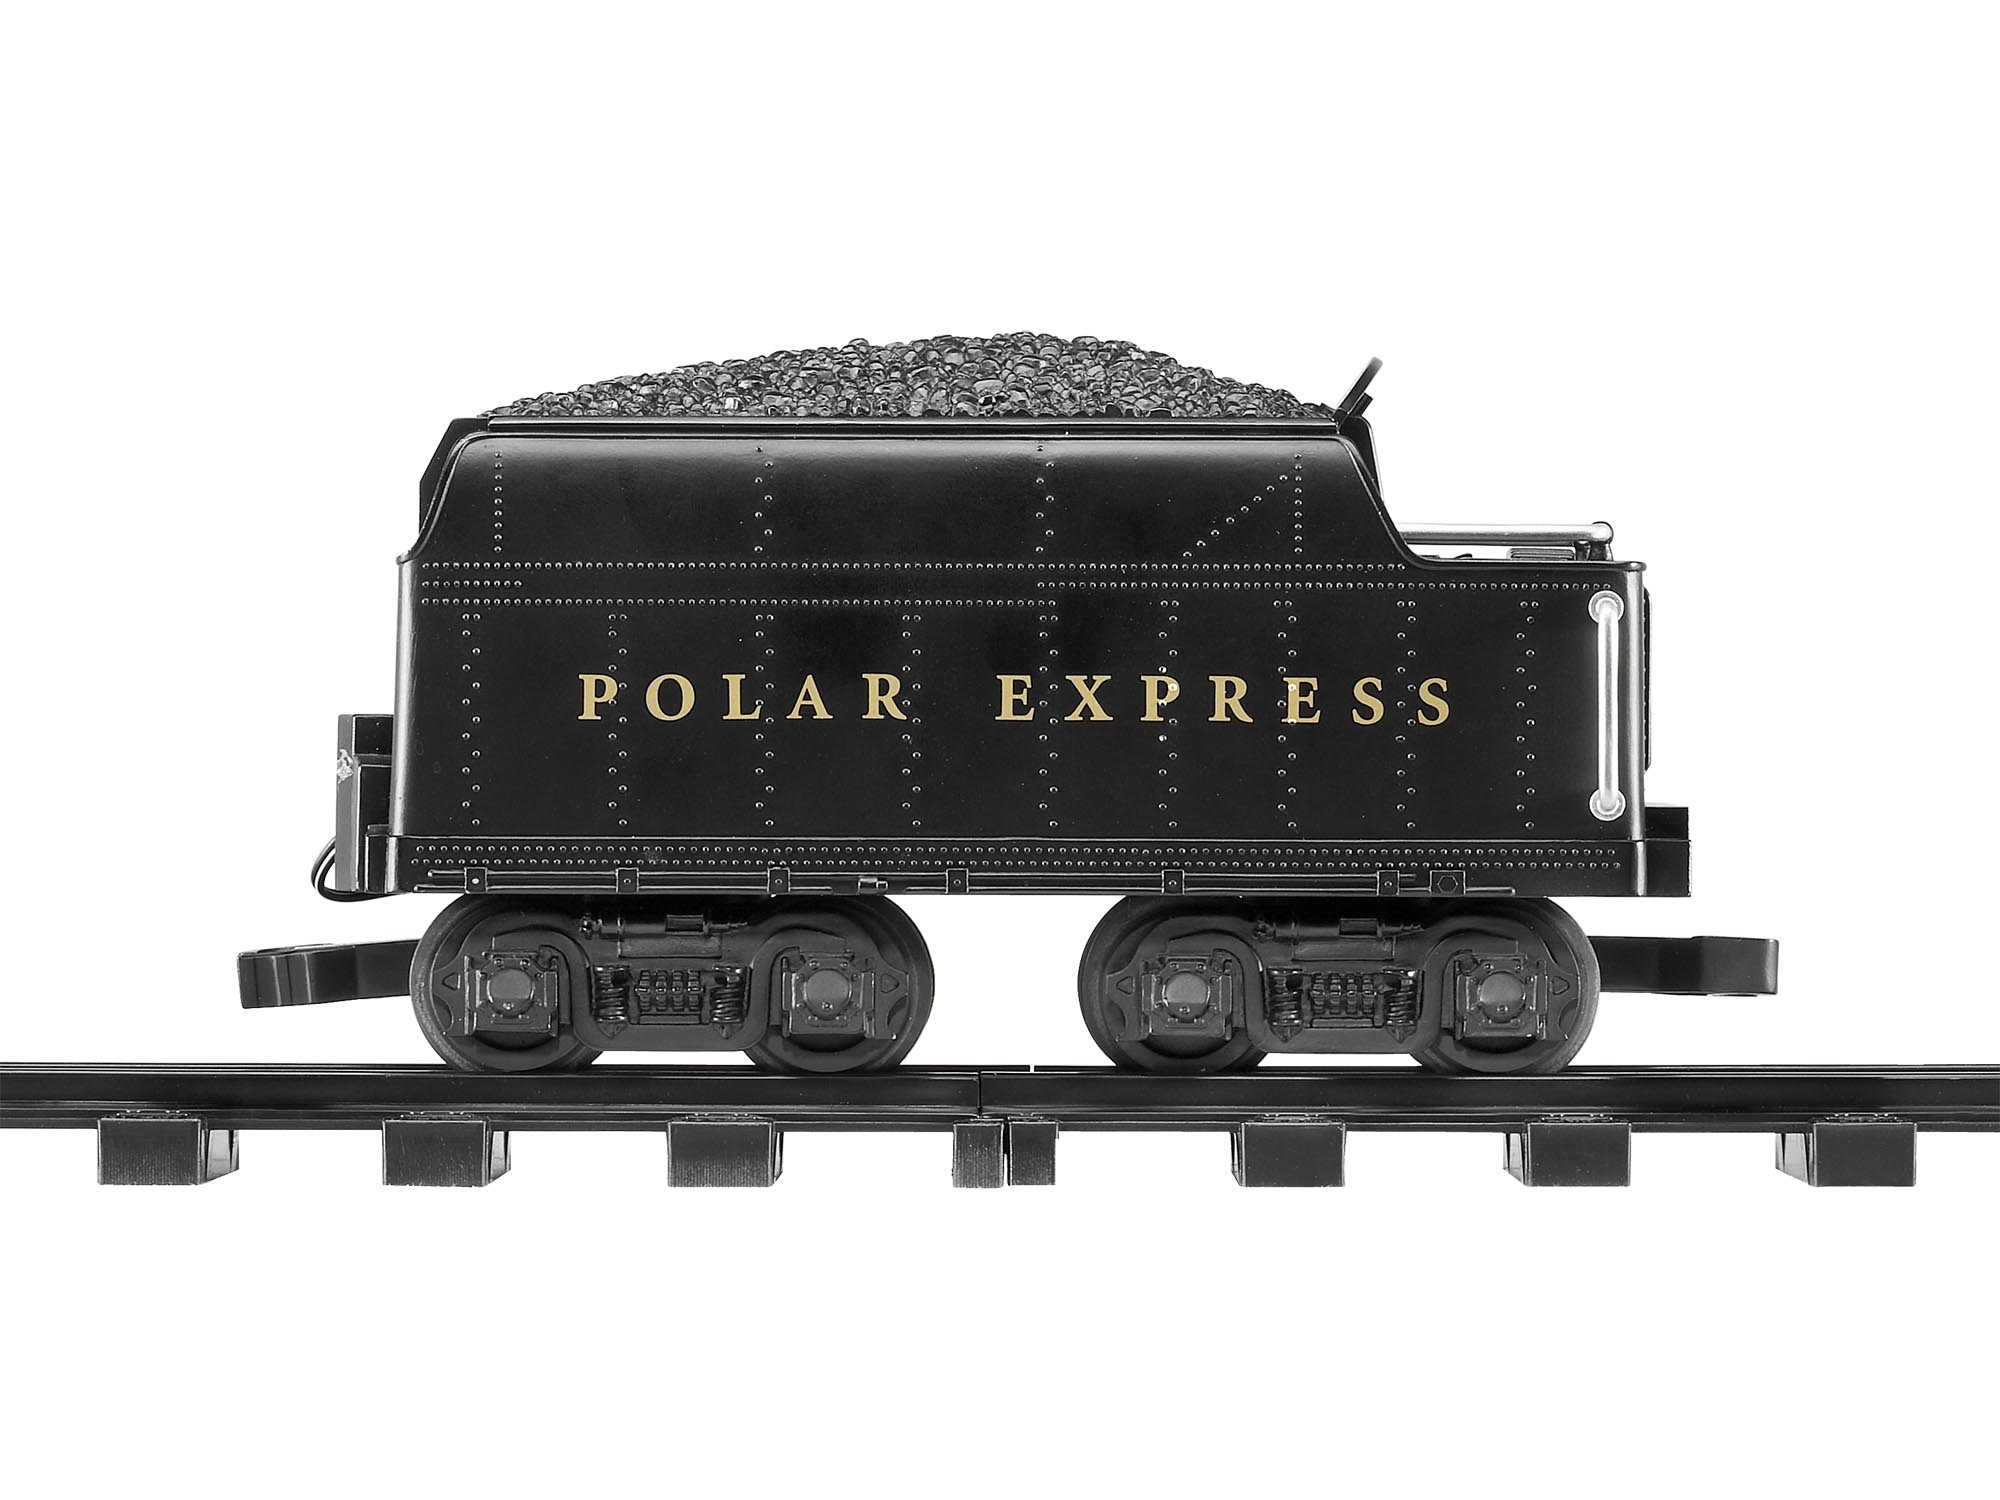 G Scale Other G Scale Lionel Polar Express Engine And Coal Car G Gauge